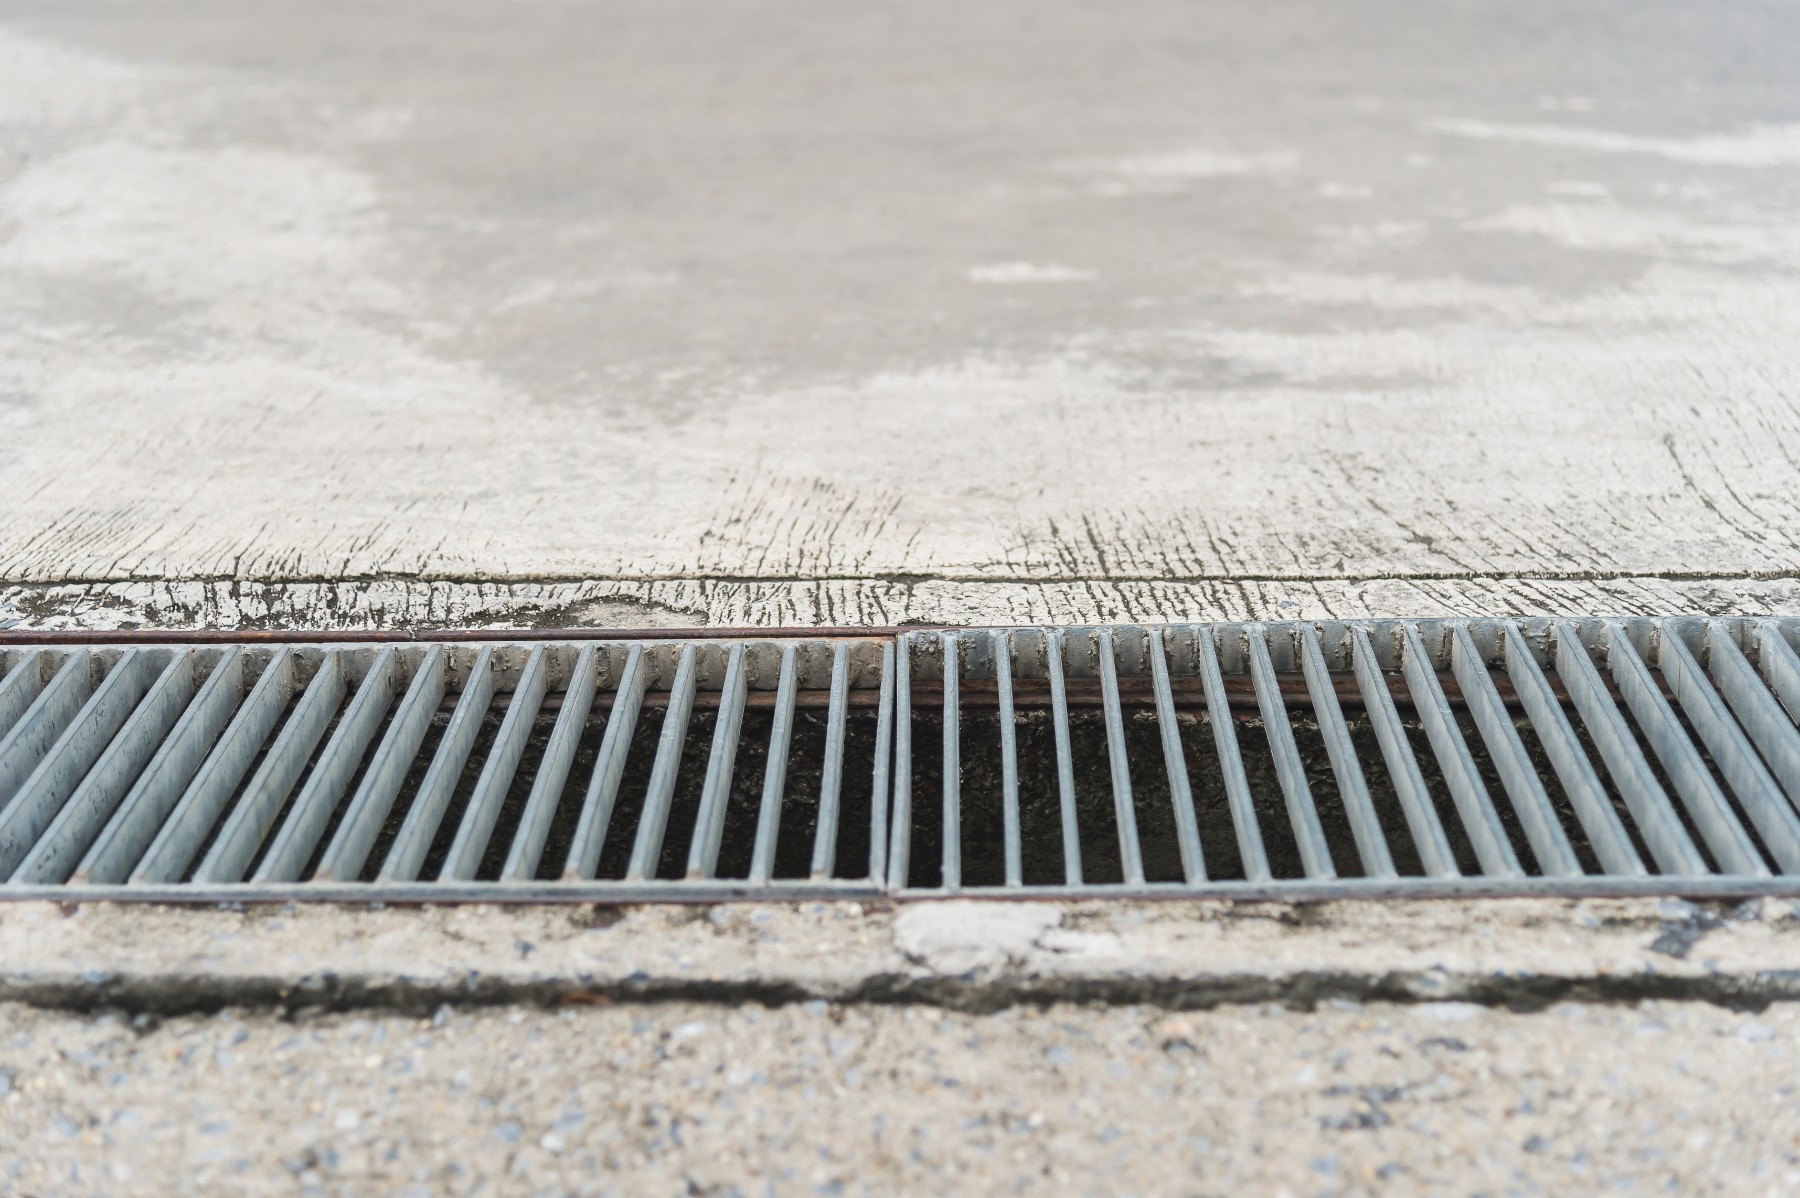 Storm water drain on concrete